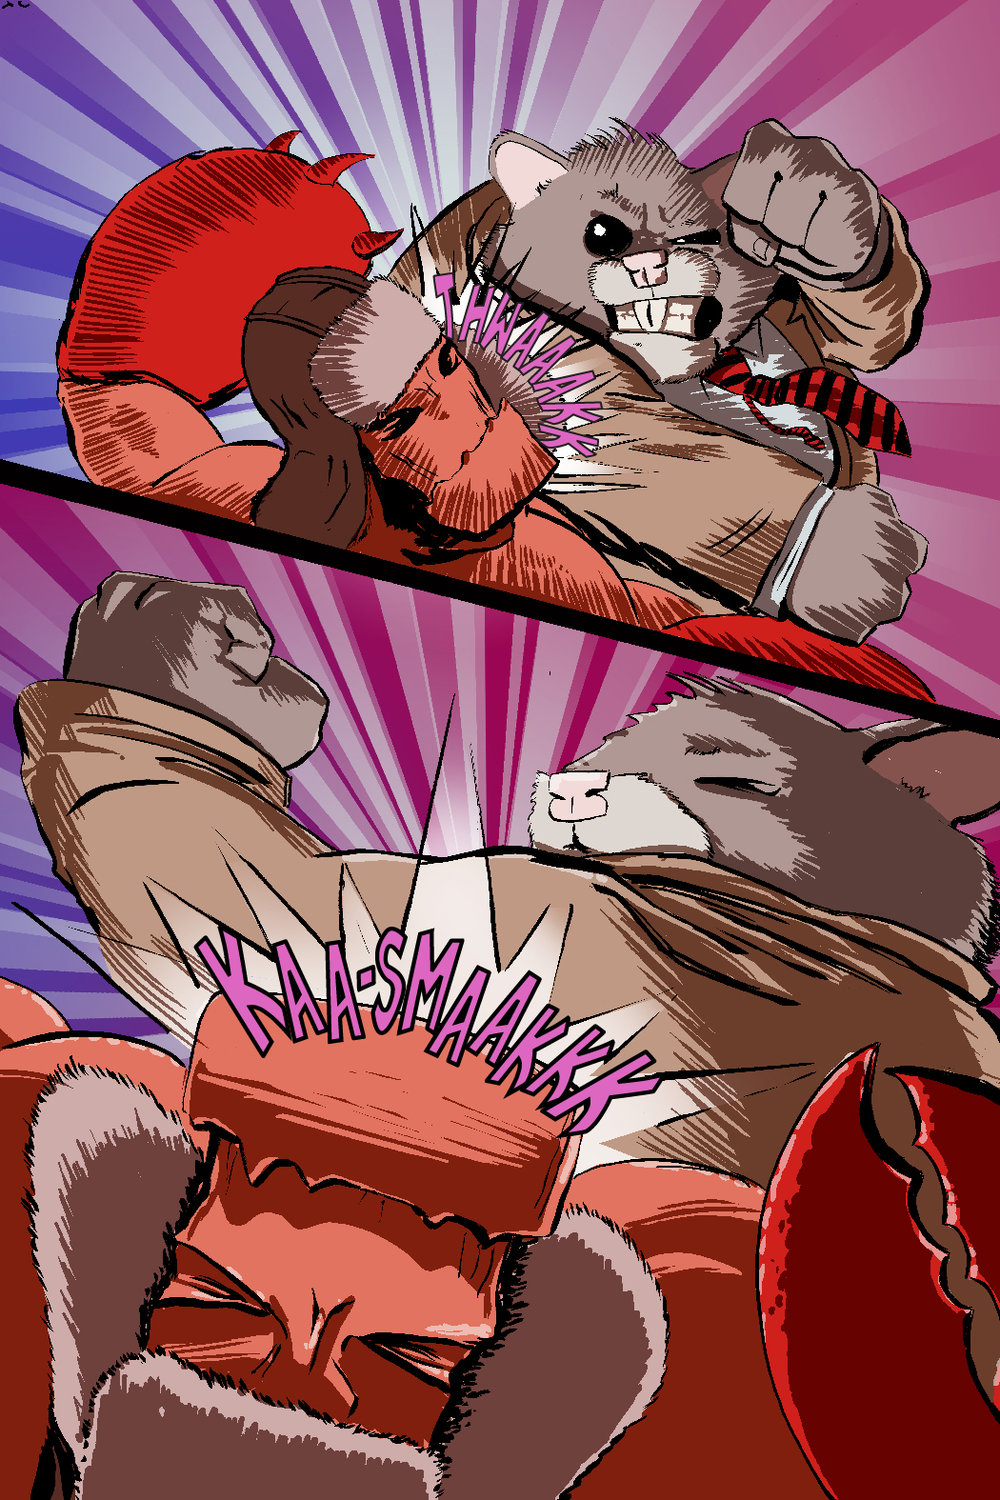 PAGE 52 Panel 1 and 2. Two big close ups of Roosevelt swinging first and missing LobStar and then in the second connecting to LobStar's jaw.